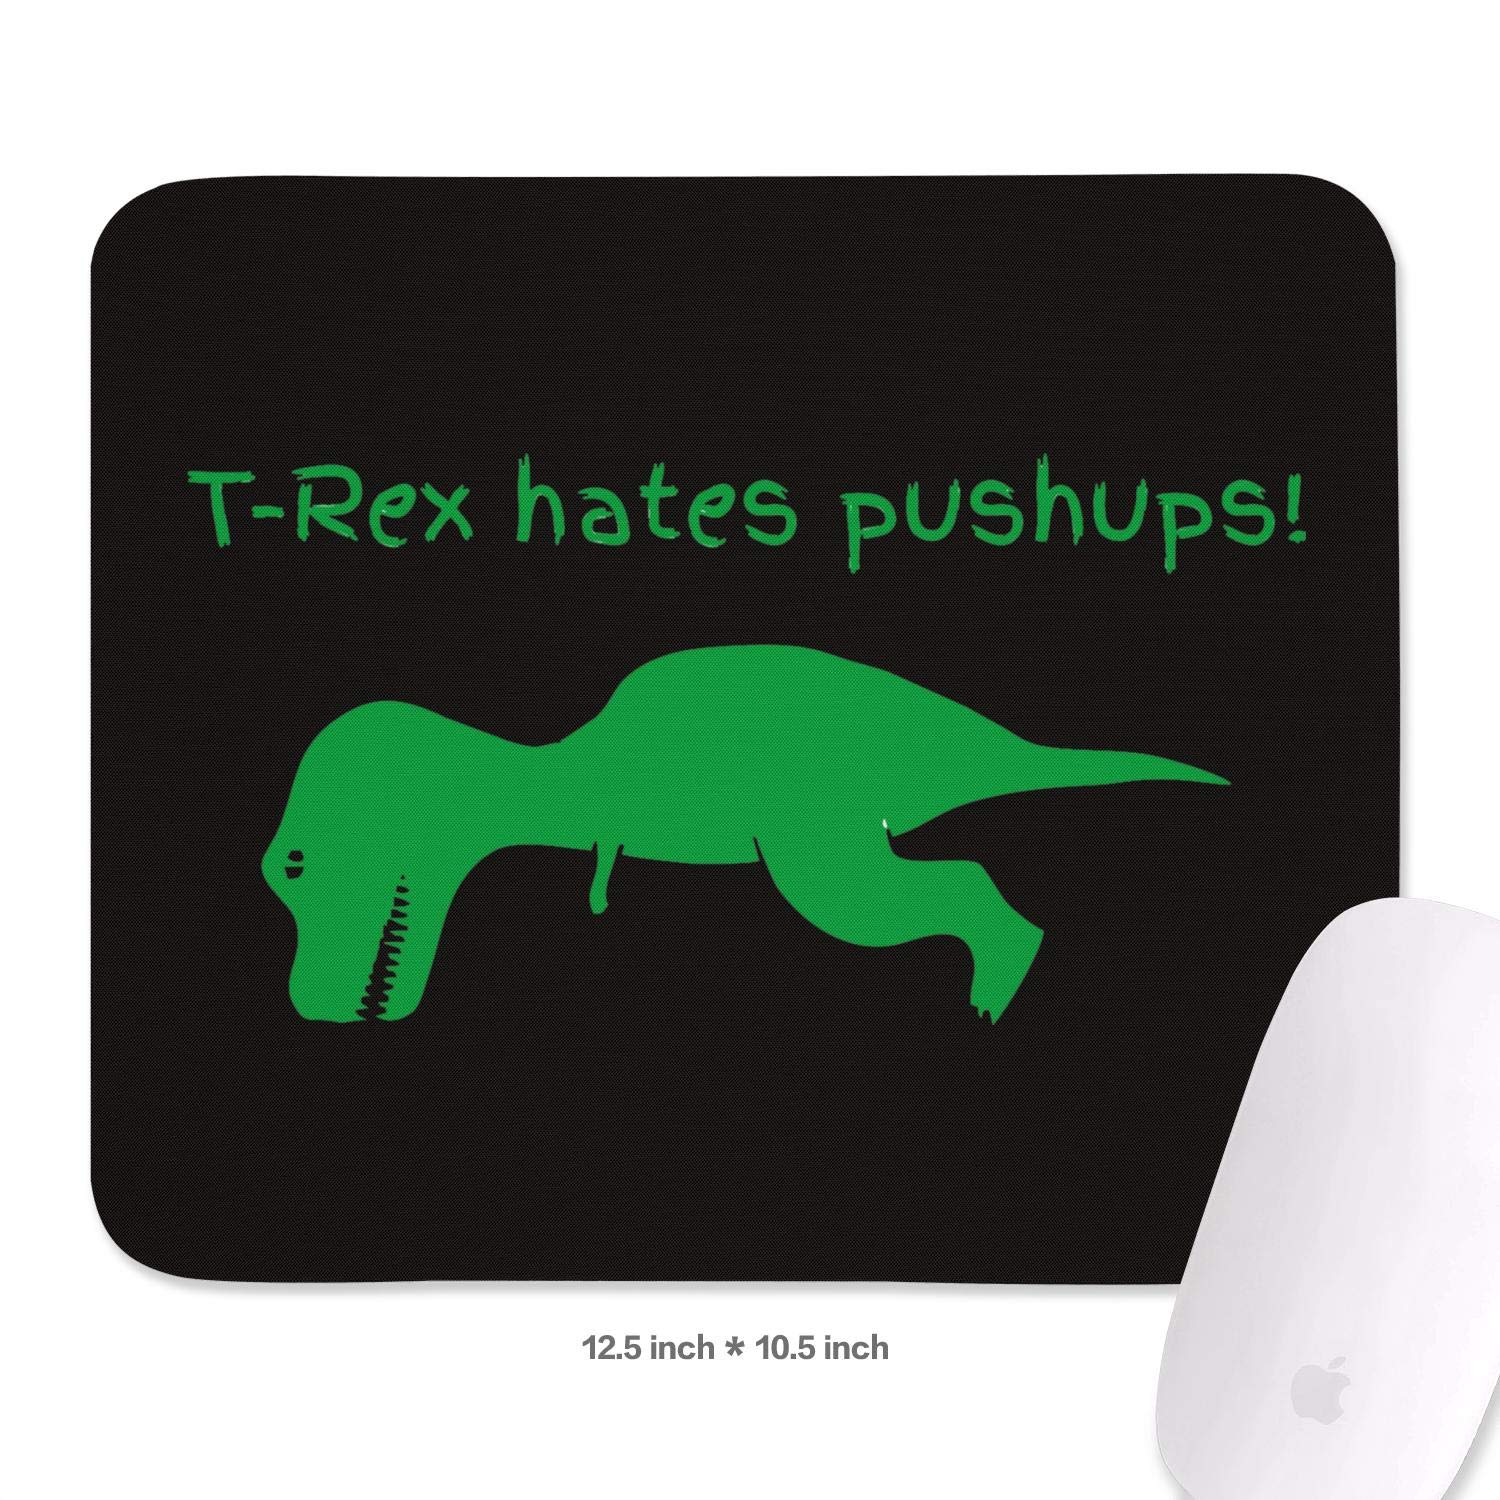 T-Rex Hates Push ups Non-Slip Rubber Mousepad Gaming Mouse Pad for Mac Lightweight Cool Printing Mouse Pads